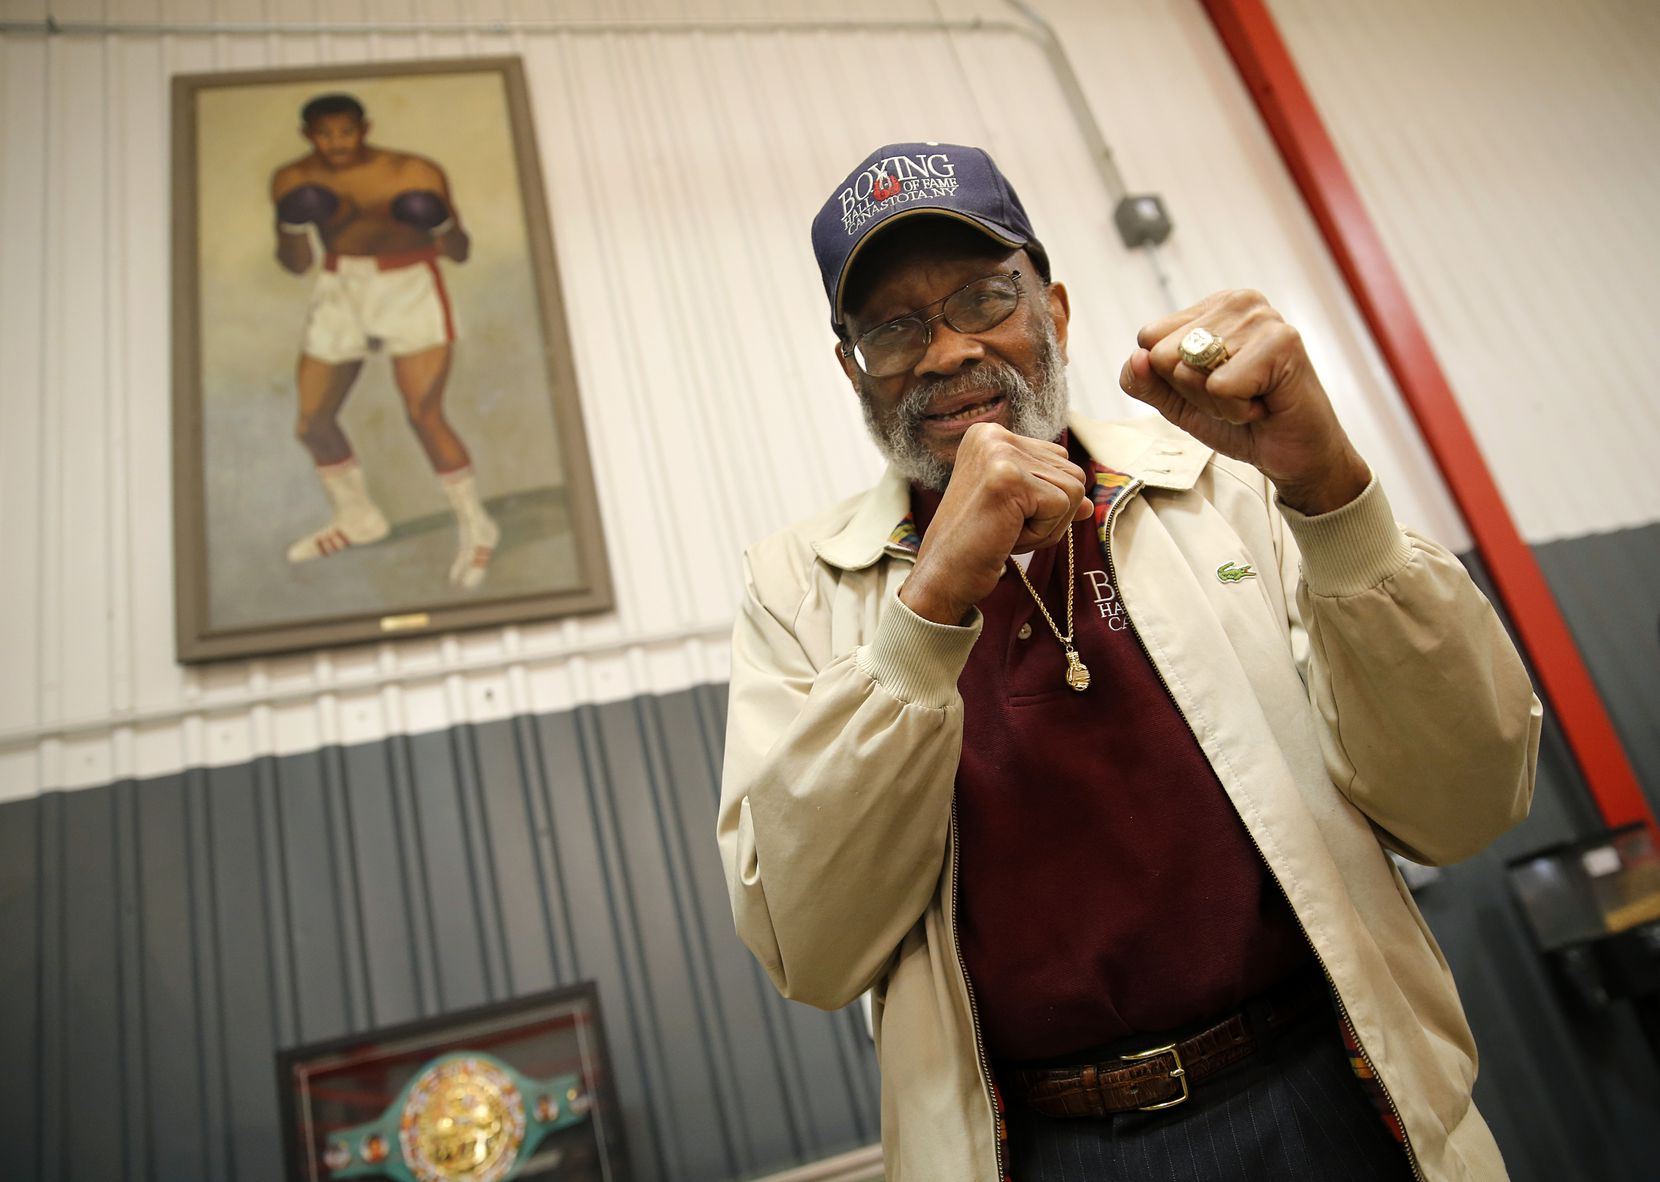 Longtime boxing trainer and former welterweight champion Curtis Cokes poses before a painting of himself at 36 yrs-old before a grand re-opening and ribbon cutting of the multipurpose Behind Every Door Life Center at the Village Oaks Apartments in southern Dallas, Wednesday, January 22, 2014.  The Center provides the surrounding neighborhood with a workout facility and sports leagues, boxing programs, and life skills programs.